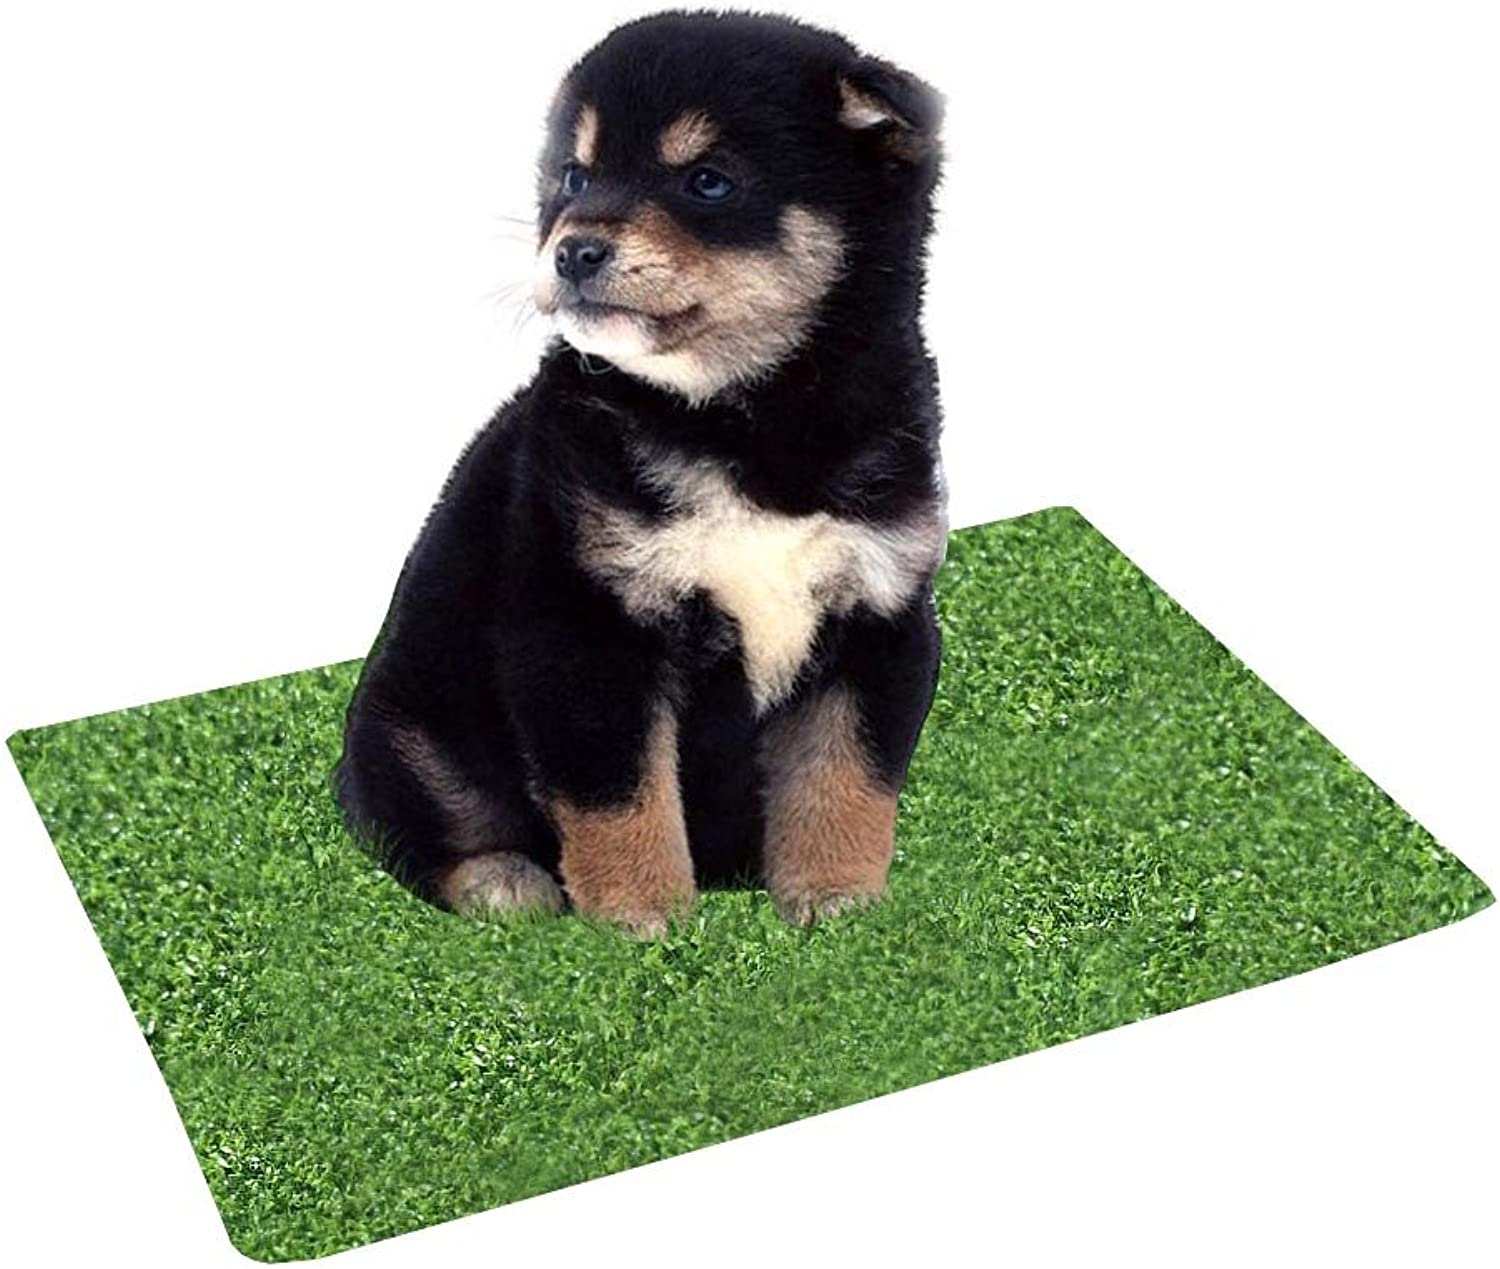 Kwan 2Pack Artificial Grass Turf Training Pad Replacement for Pet Potty Toilet Trainer for Puppy Dog Pee Indoor Home Large Indoor Outdoor